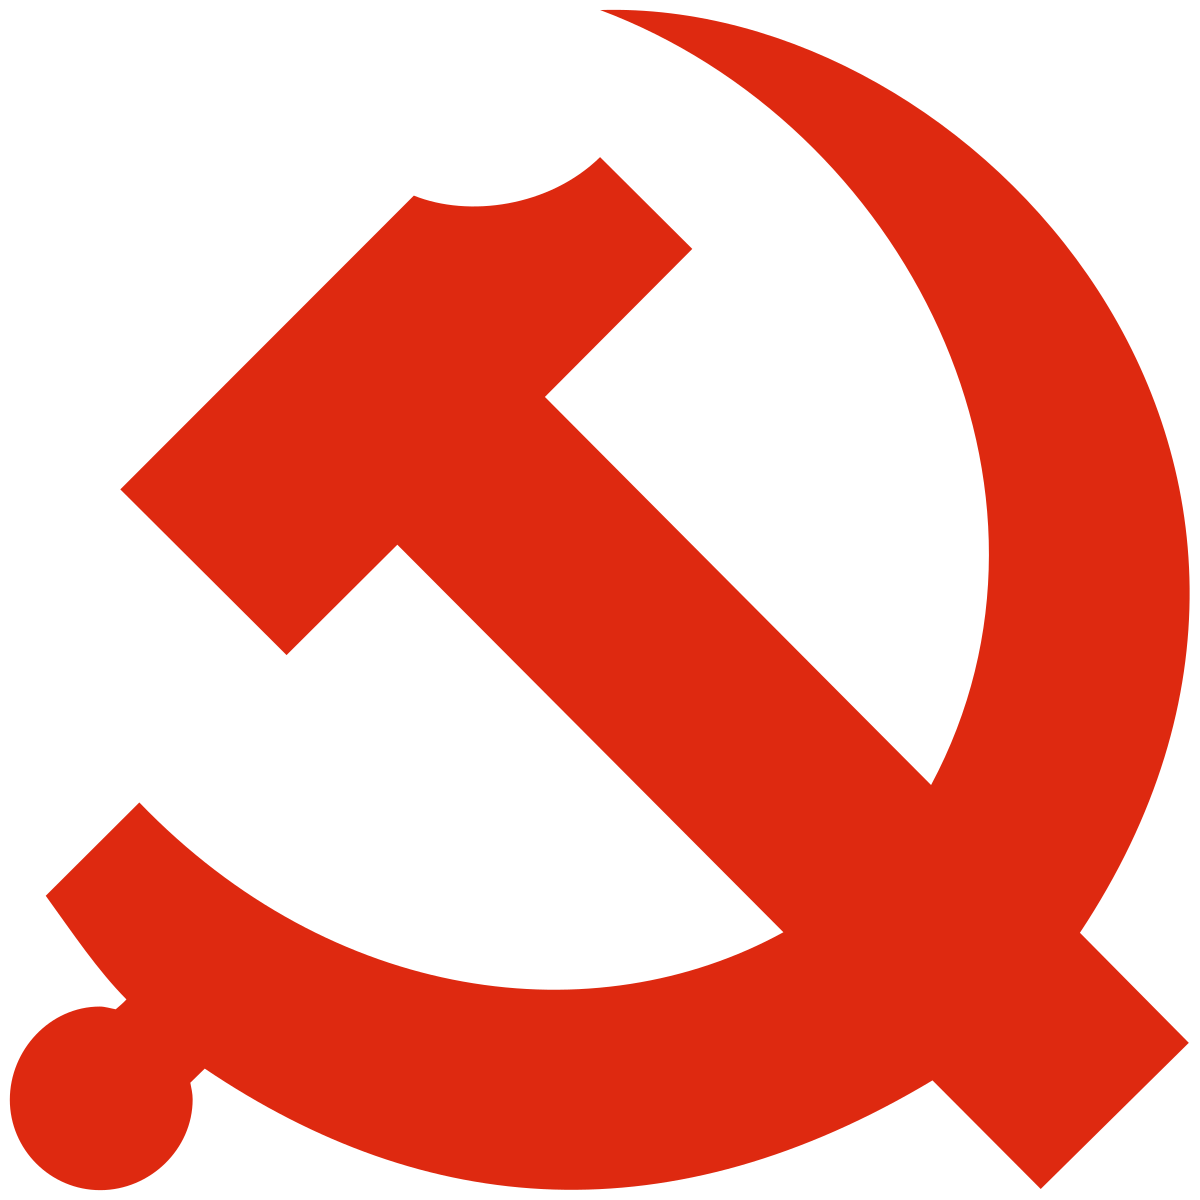 Communist party of china. Economics clipart socialist economy